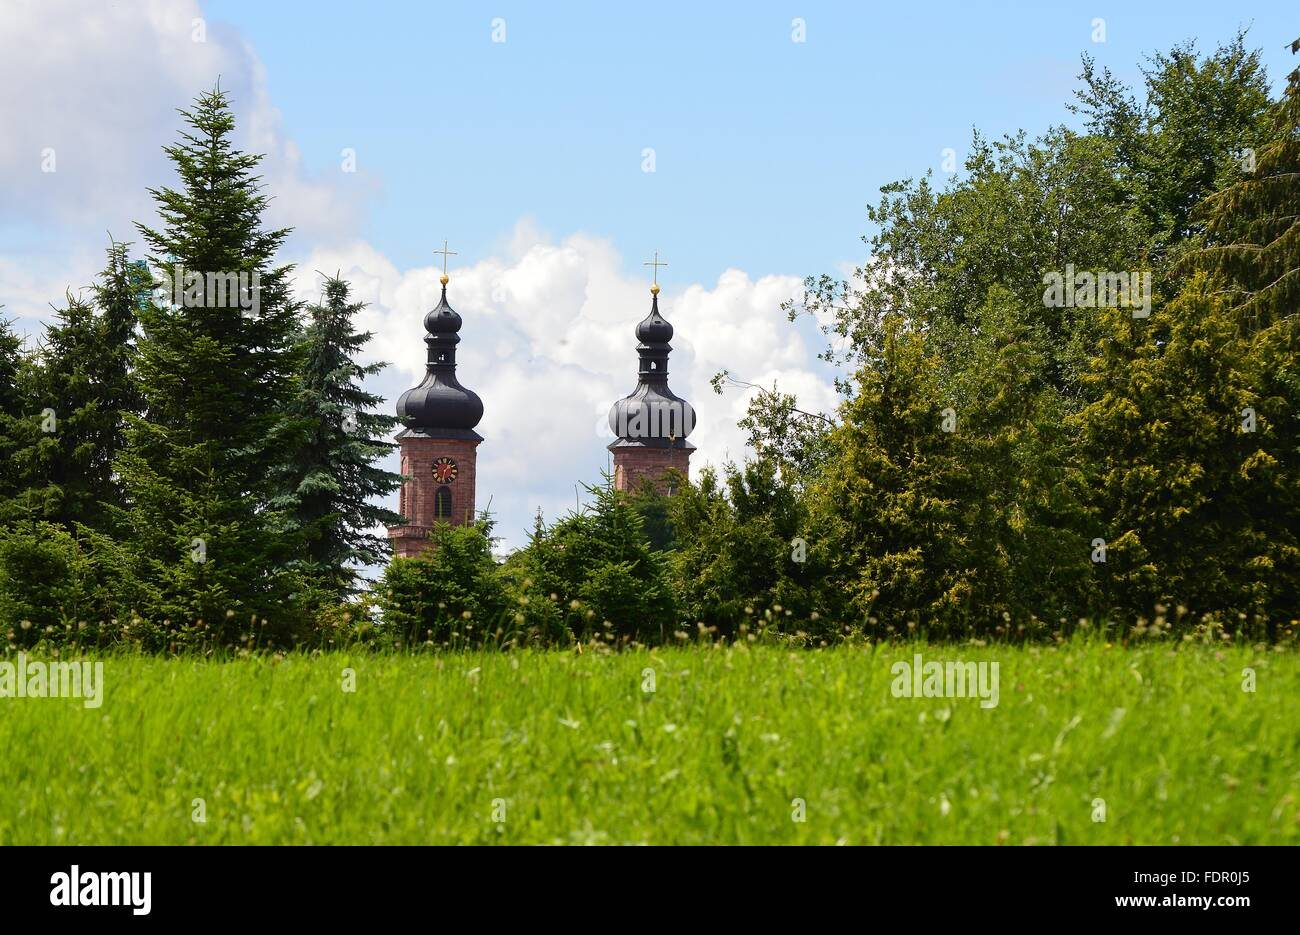 baden wurttemberg,bell towers - Stock Image